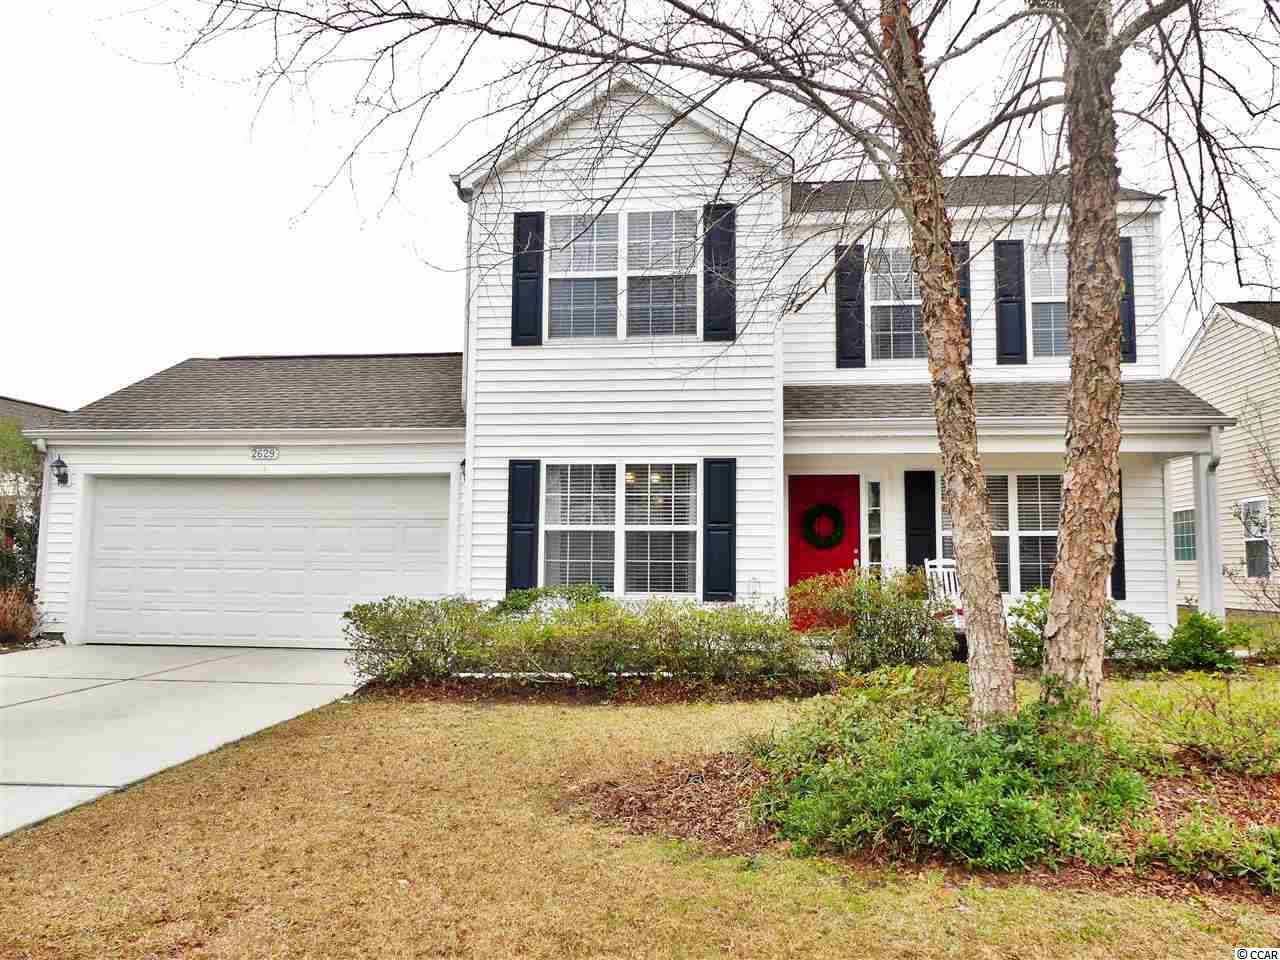 Carolina Forest Homes for Sale -  New Listings,  2629 Scarecrow Way